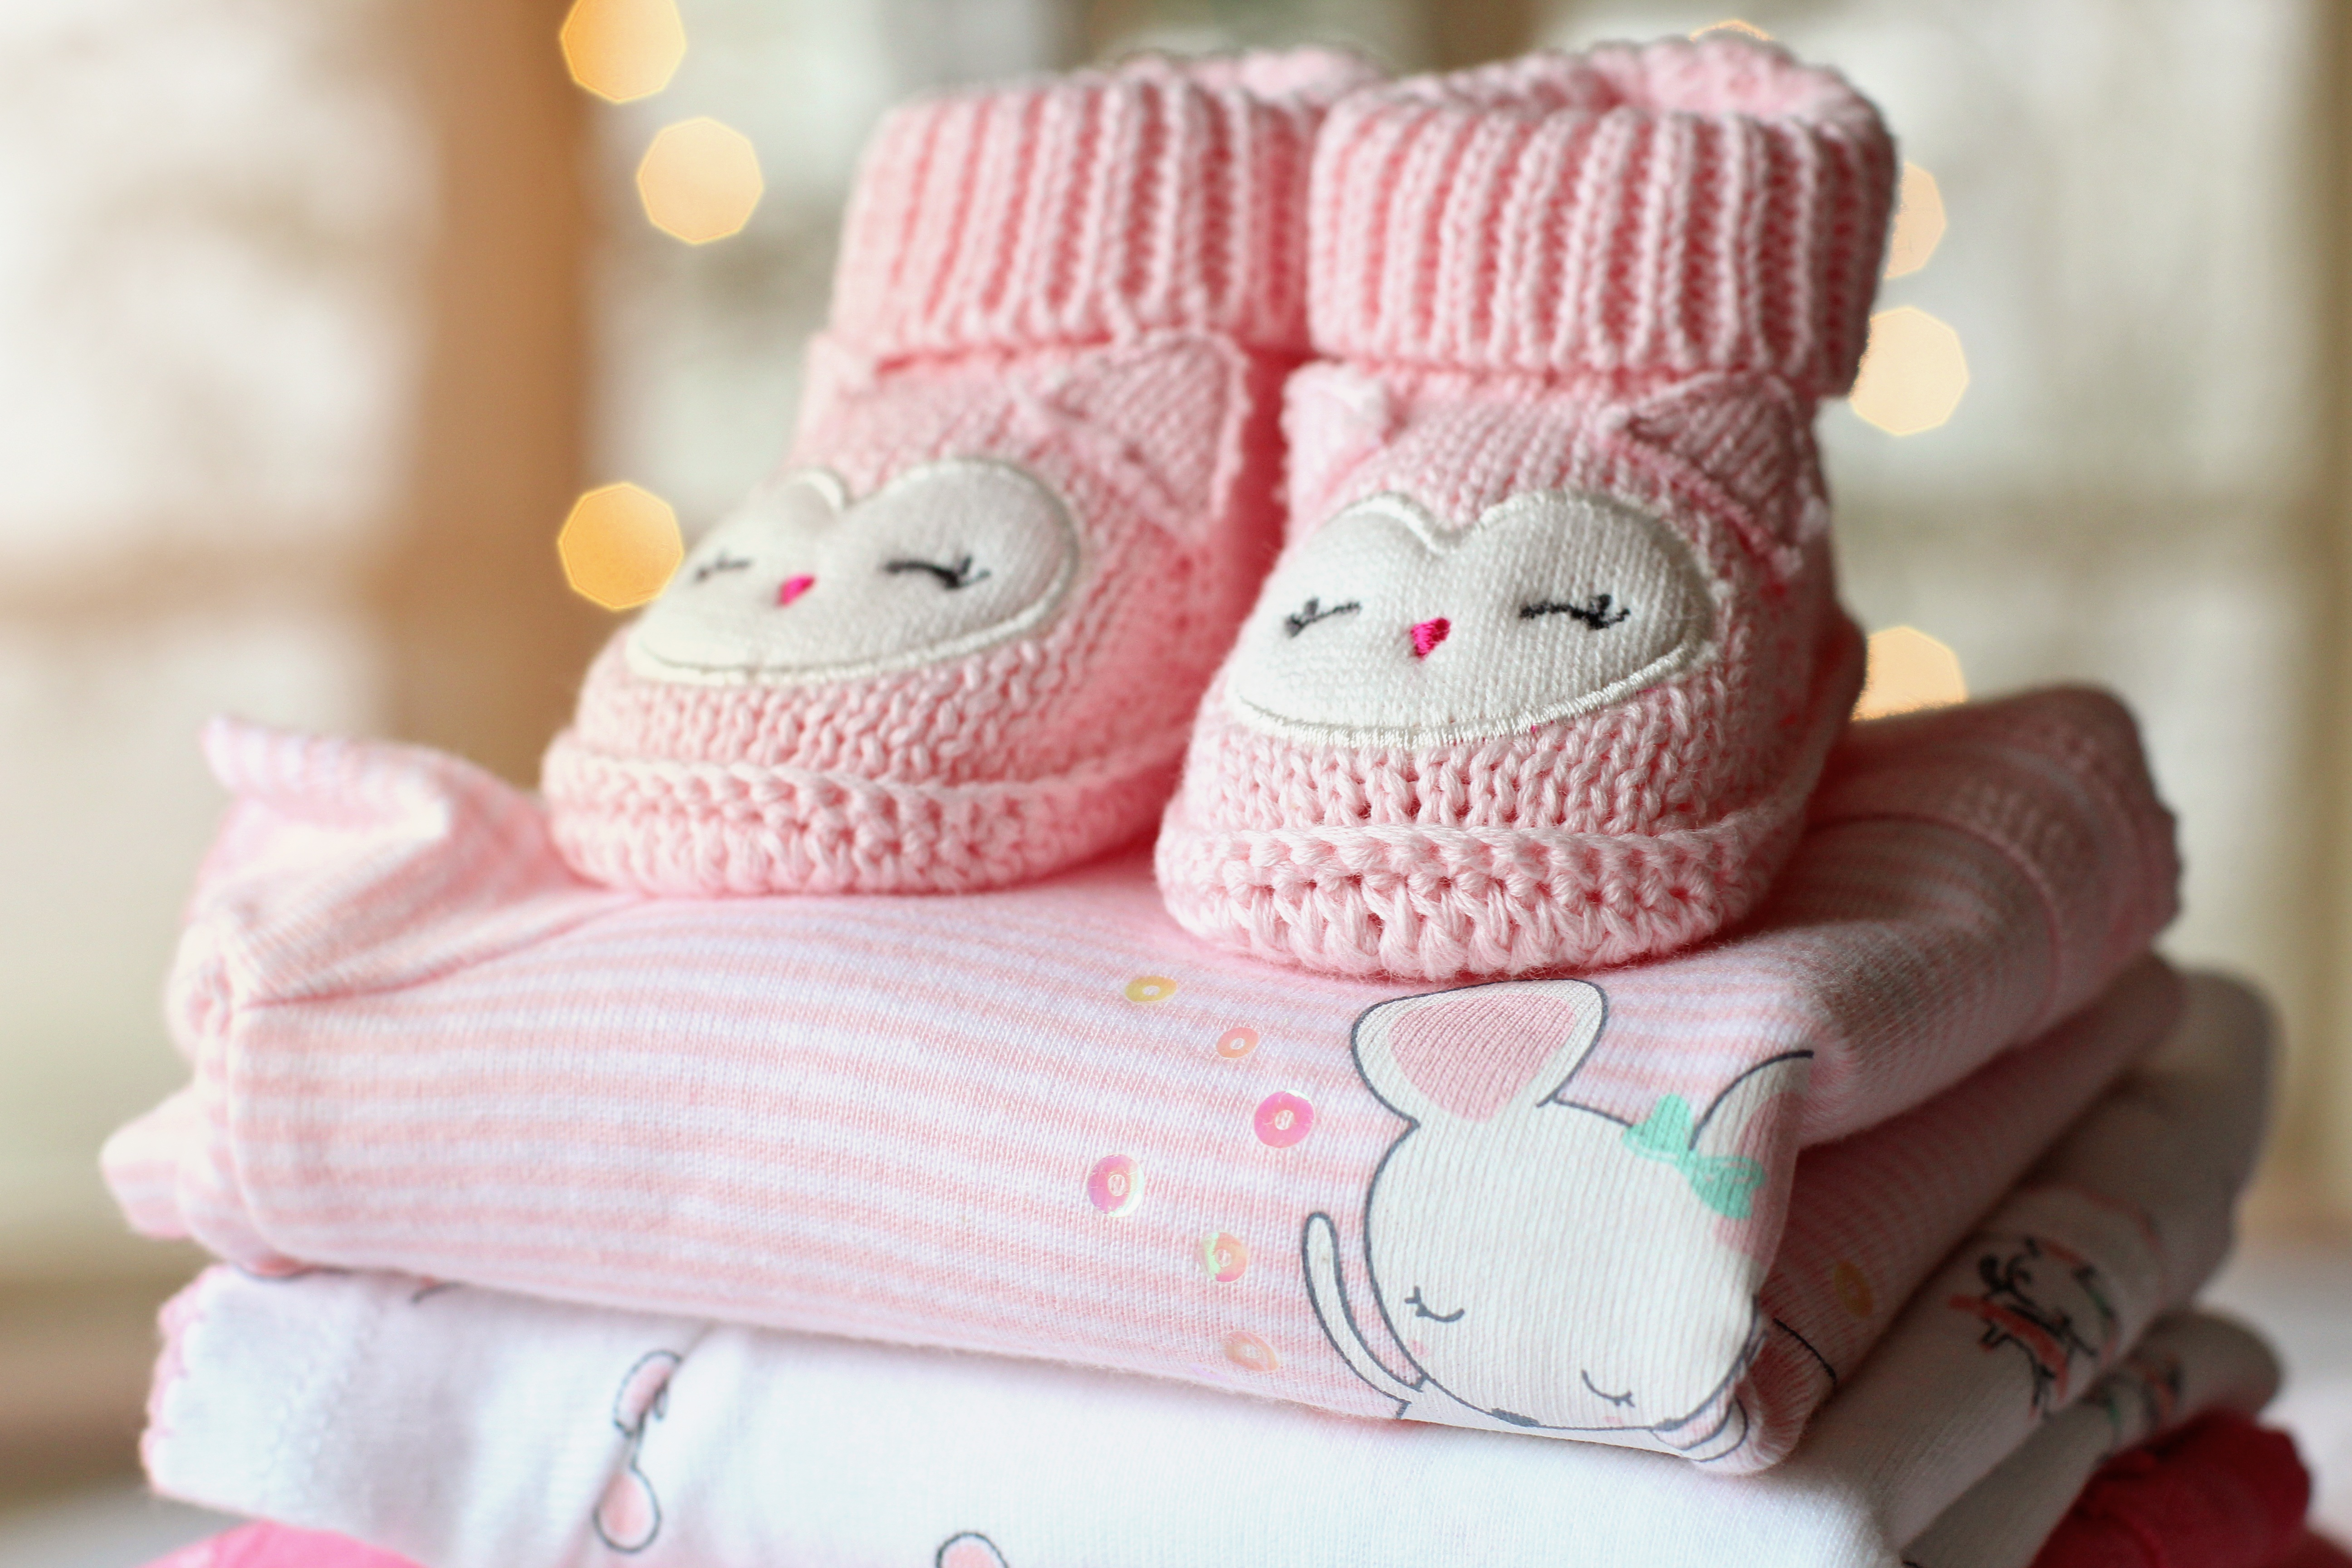 Great gifts you can buy for new mothers - MummyConstant